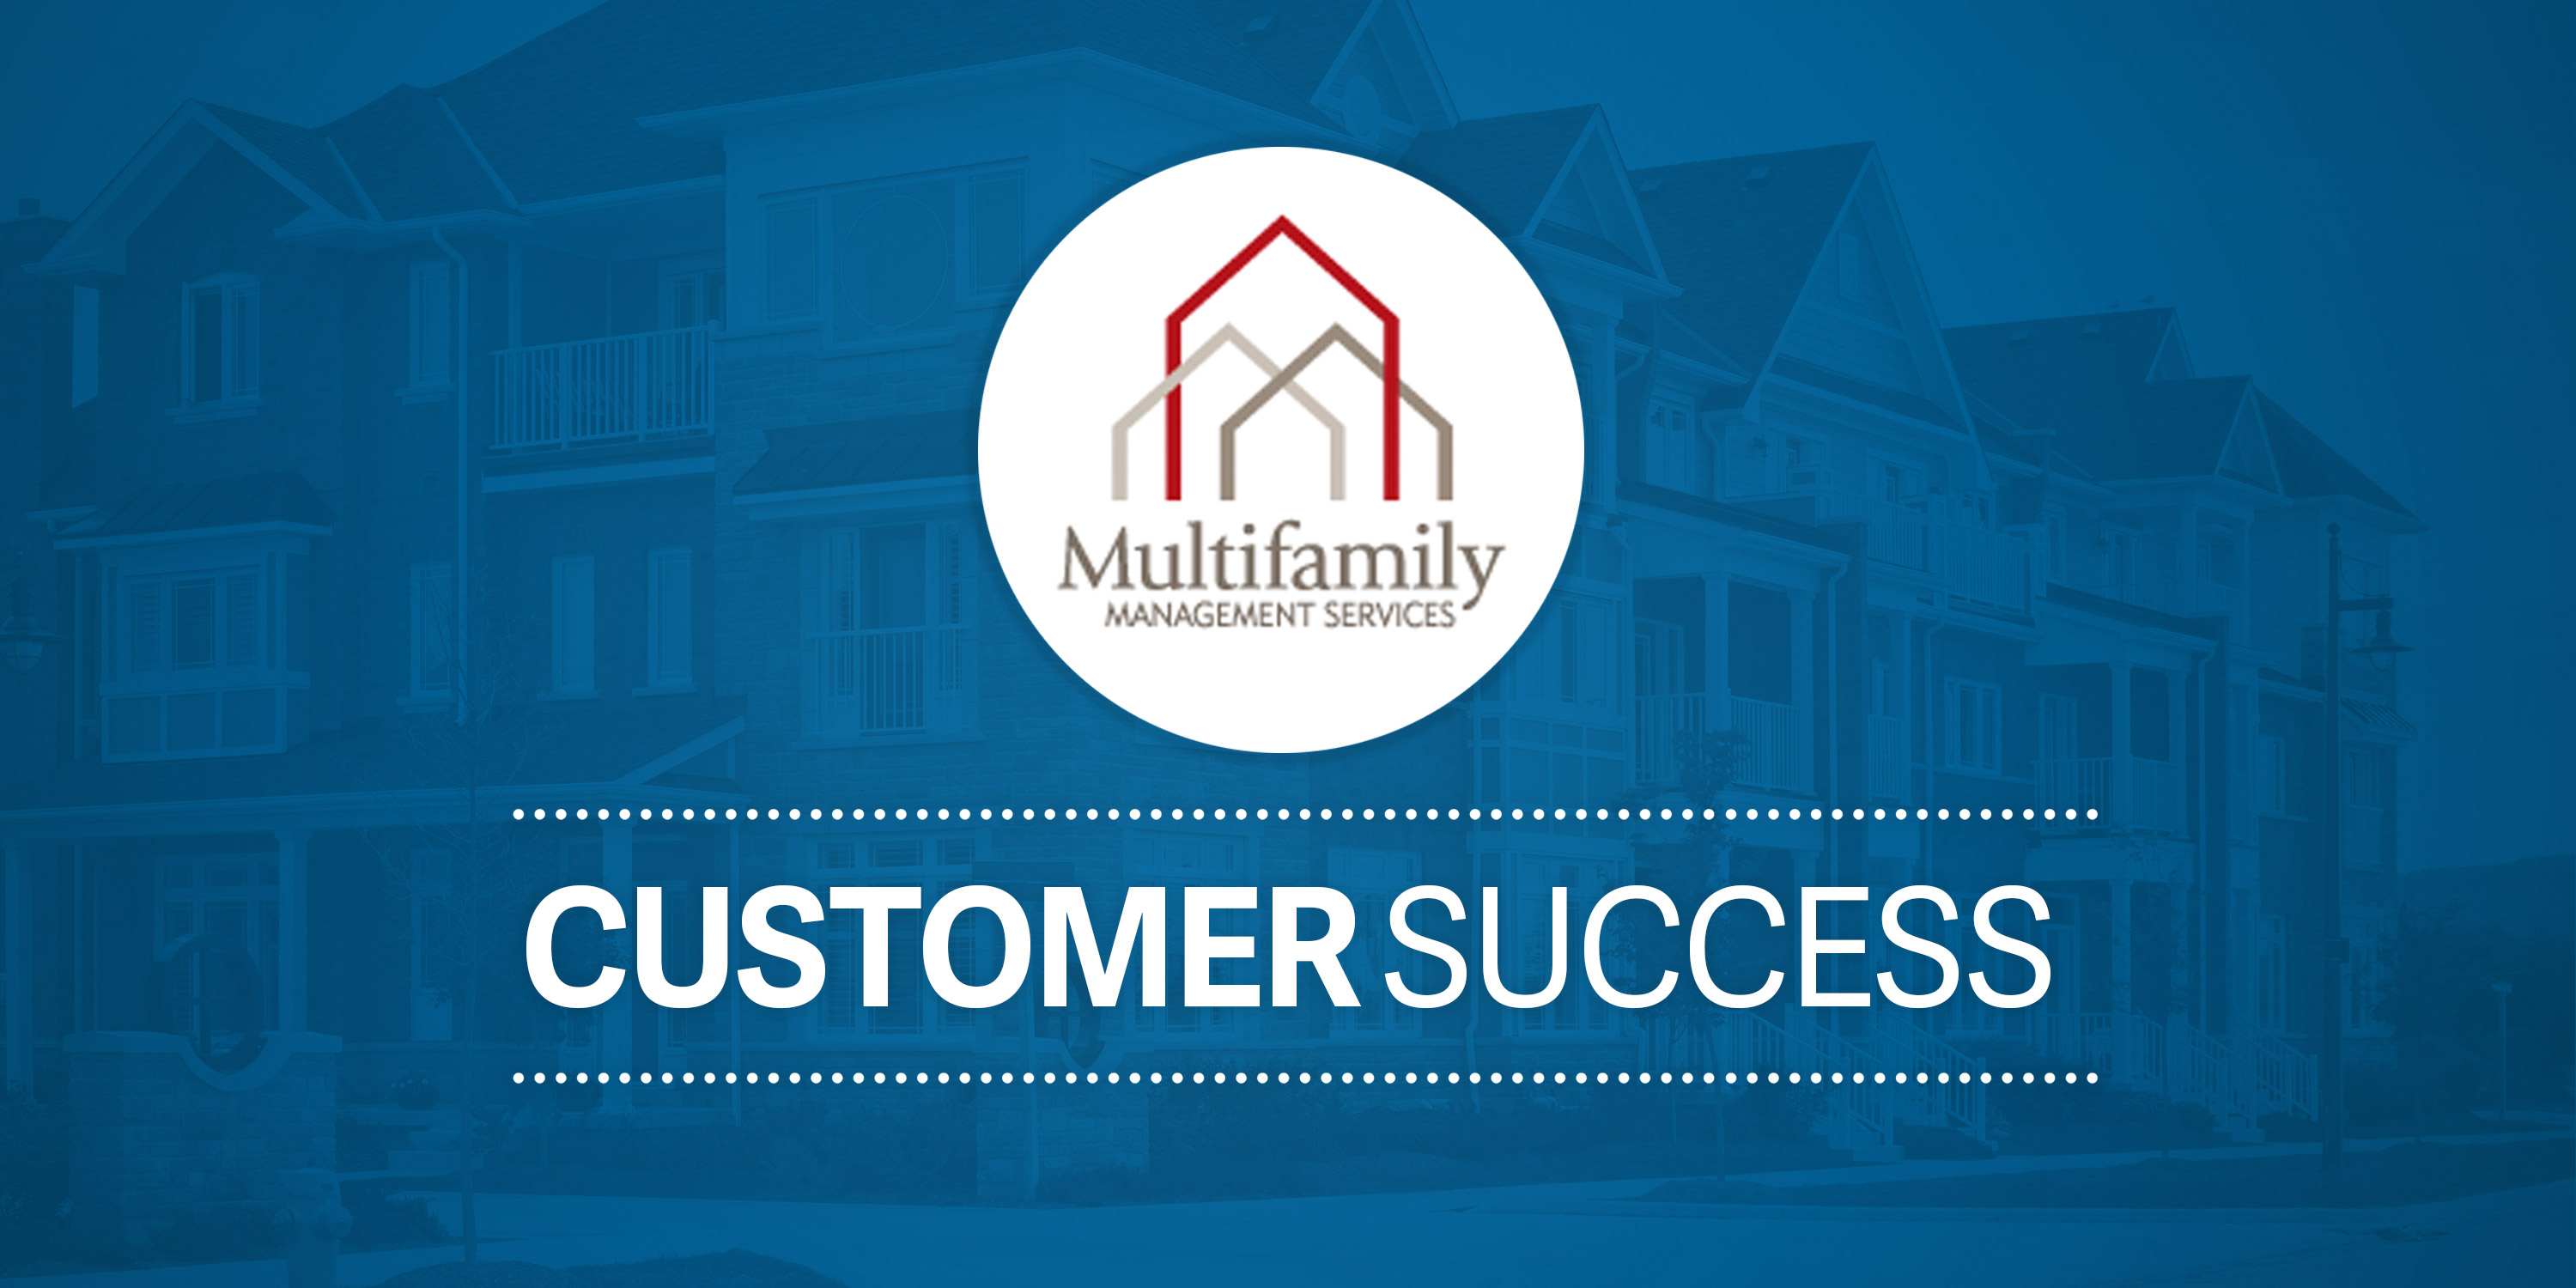 Case Study: Multifamily Management Services